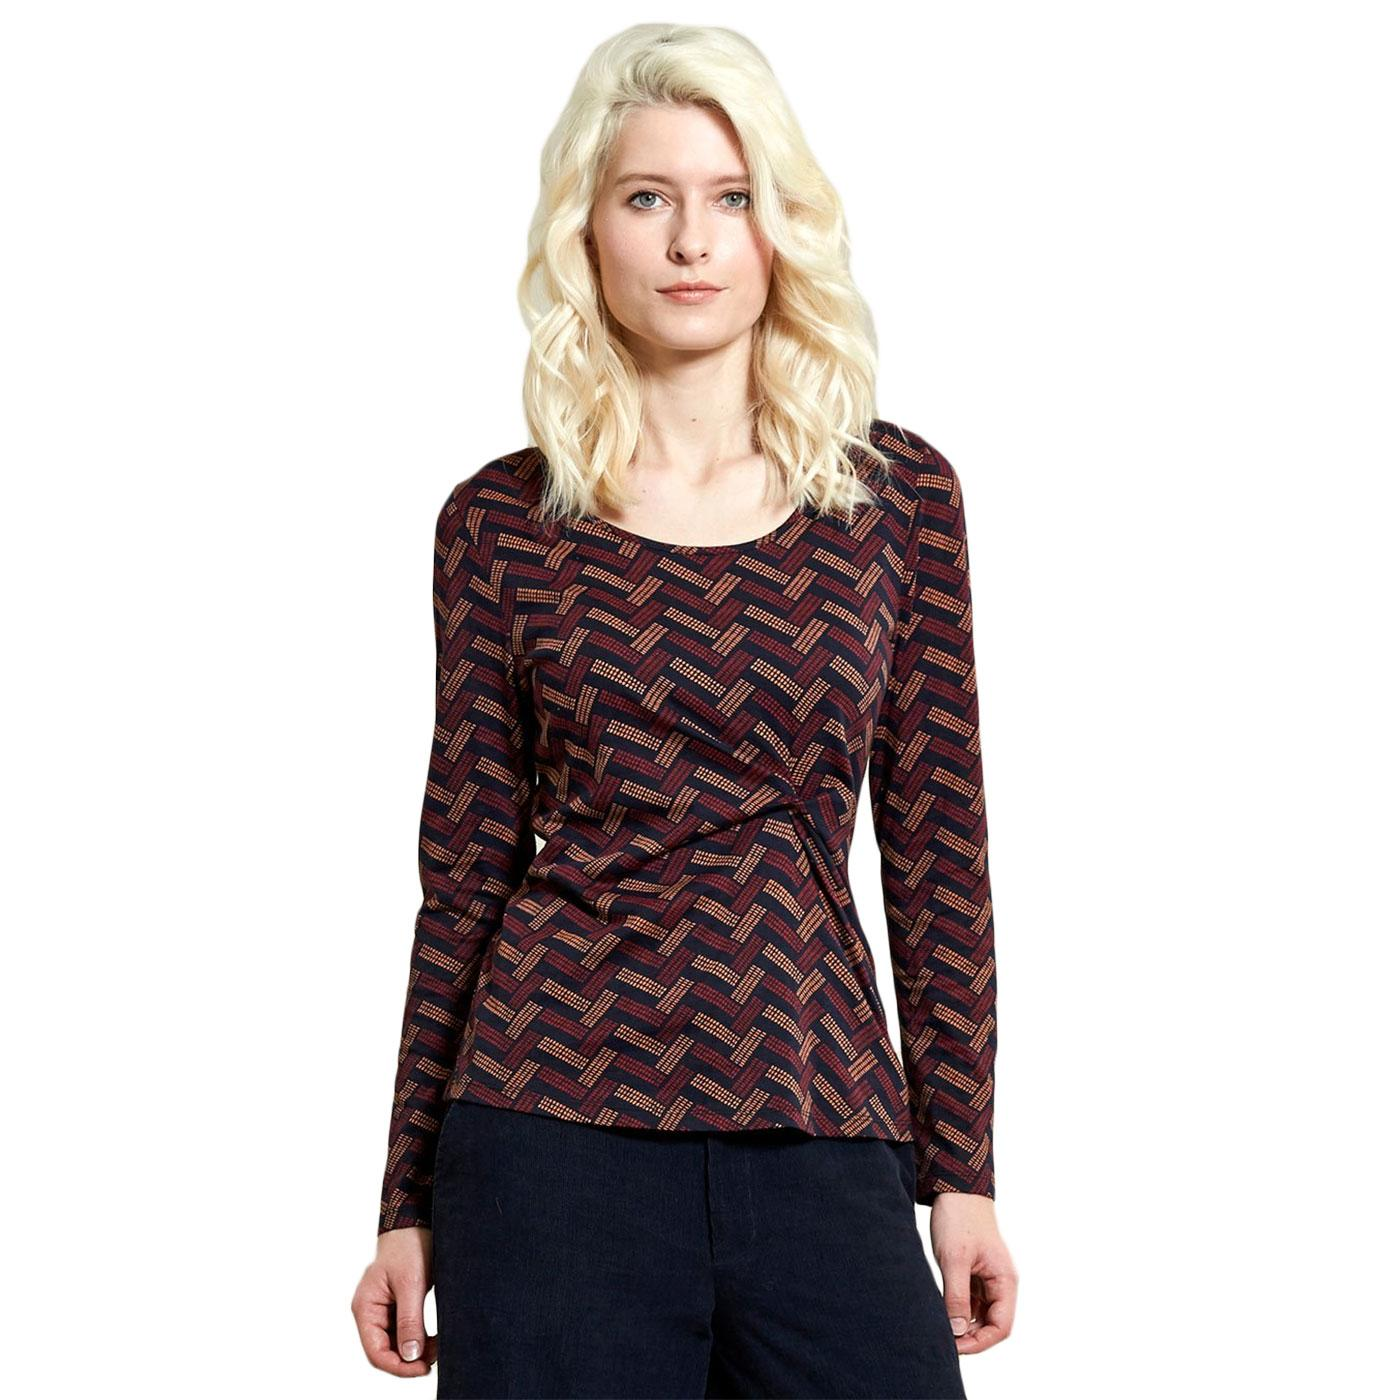 Twist Print NOMADS Retro Geometric Top Navy Blue